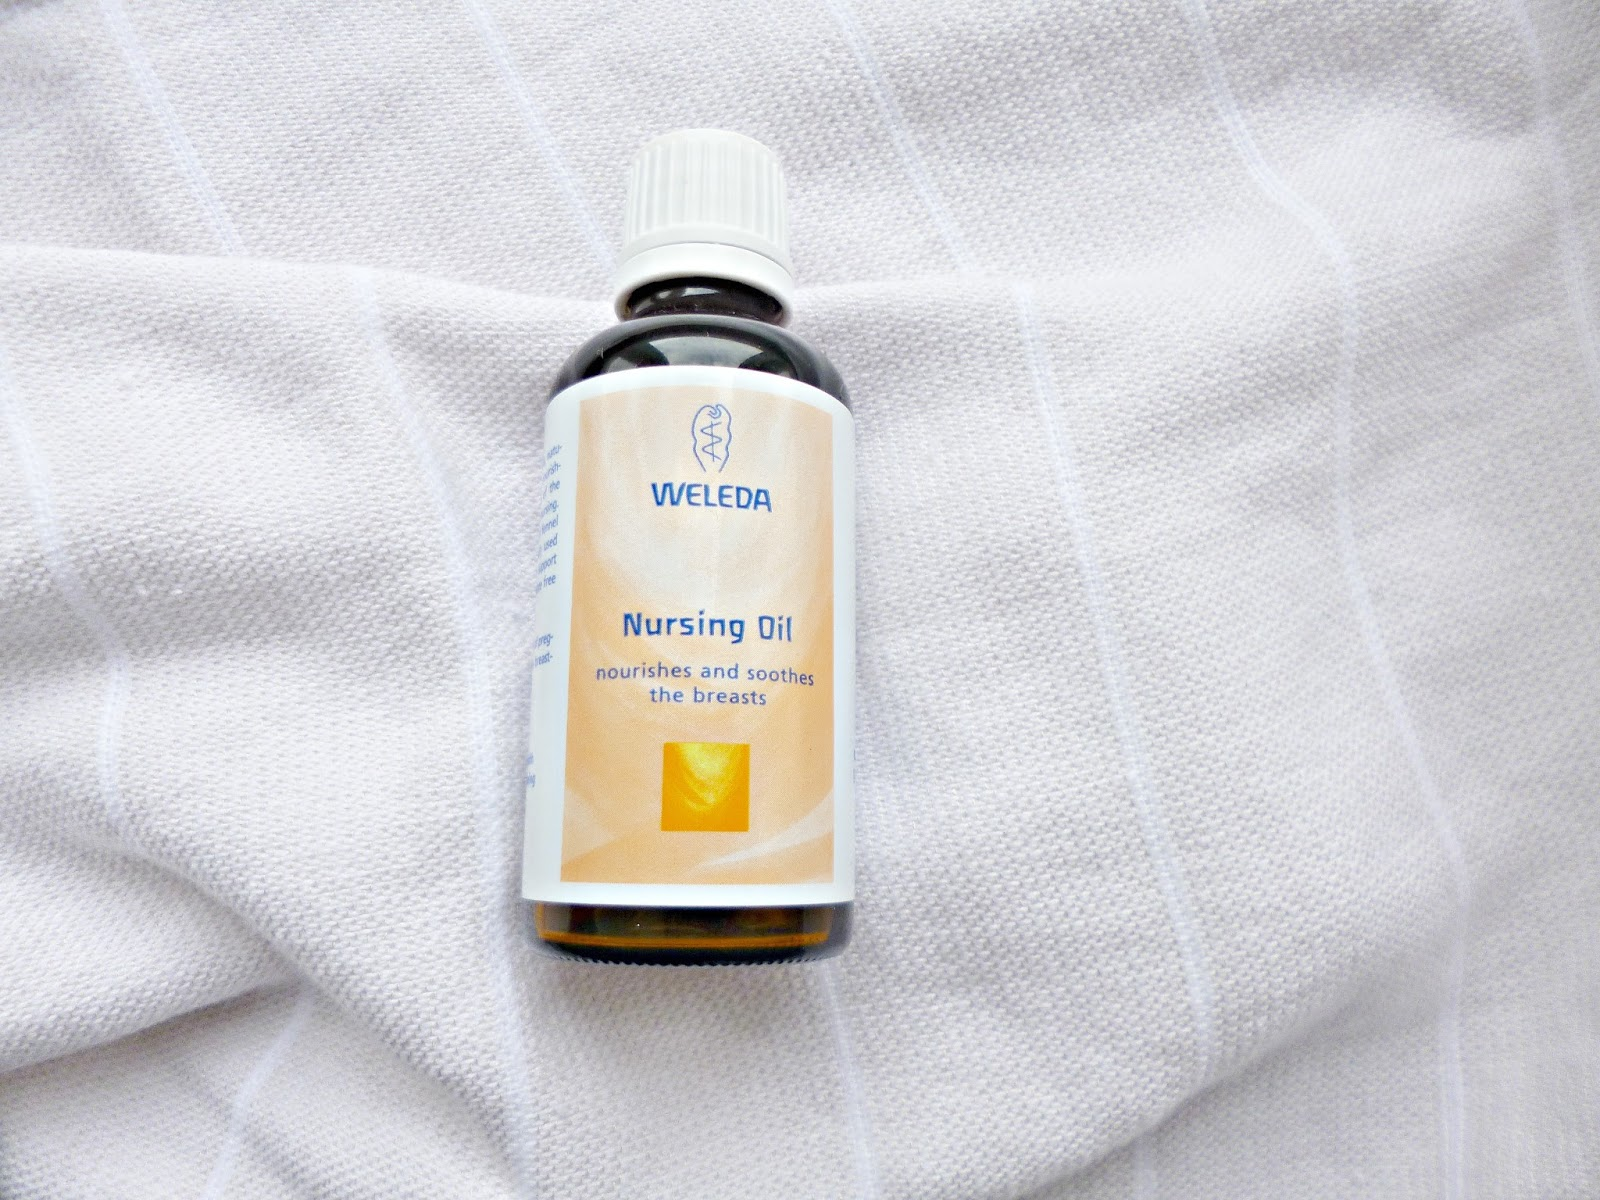 Weleda nursing oil review